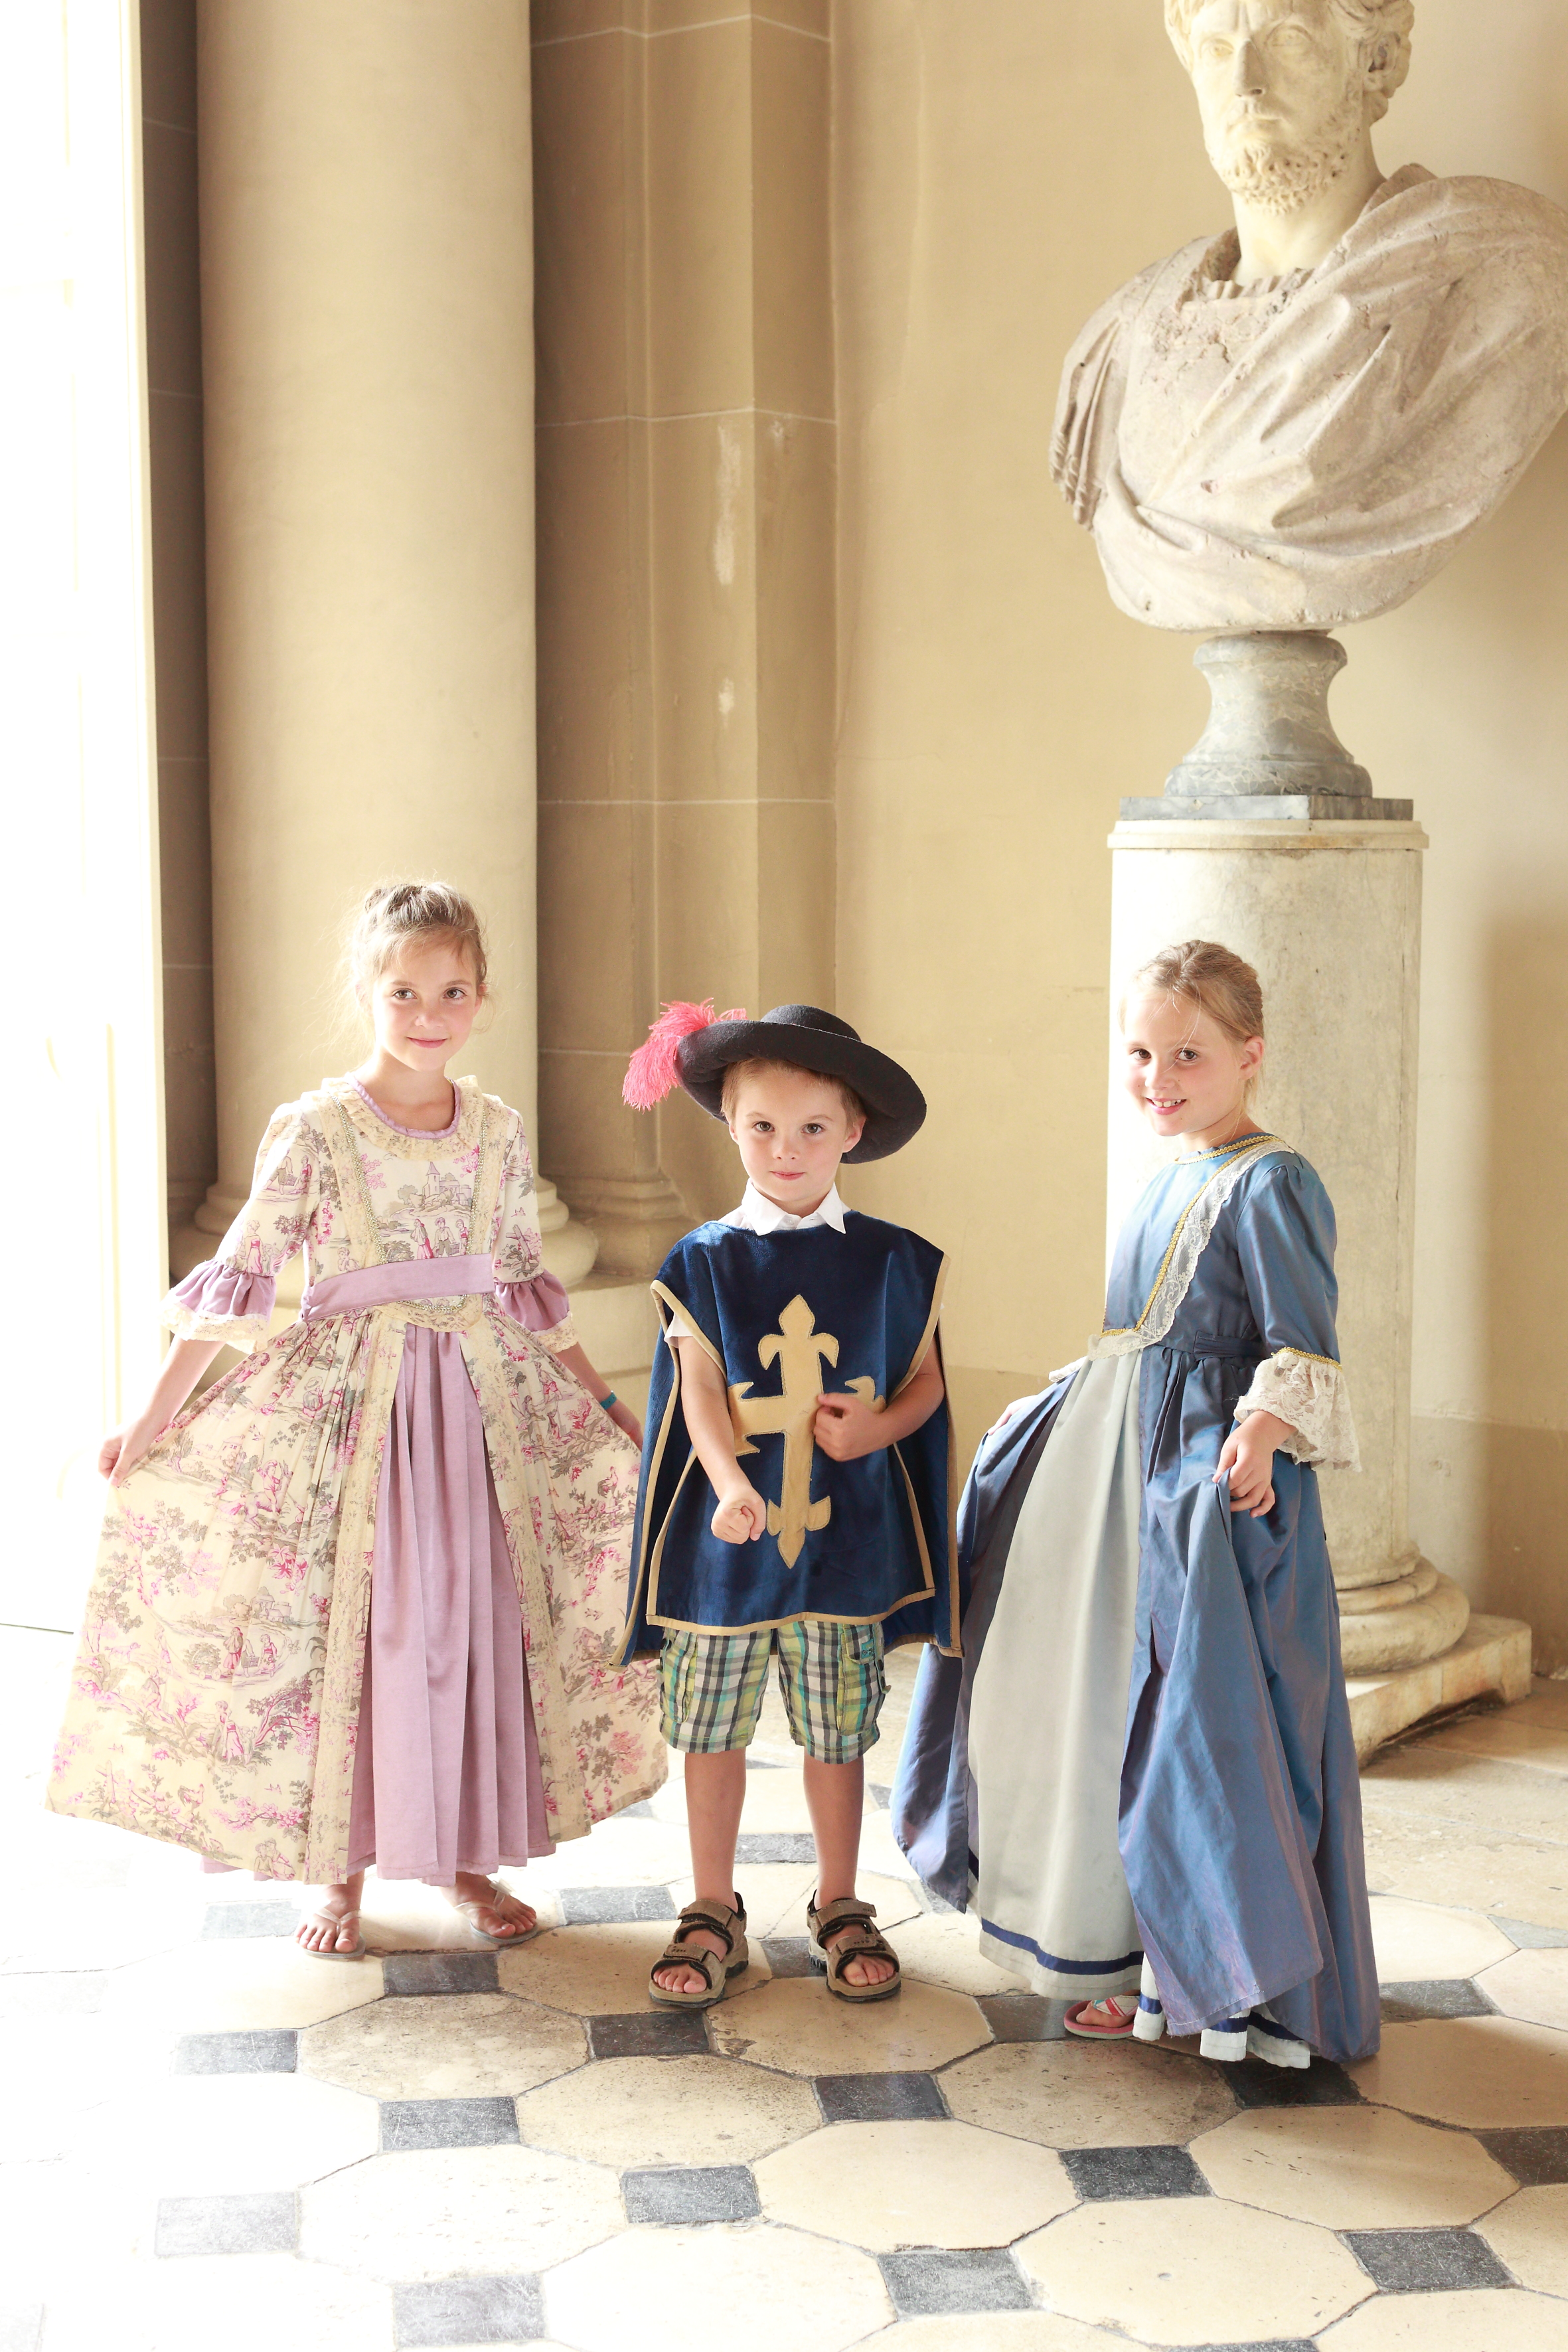 Vaux Le Victome - Period Costumes